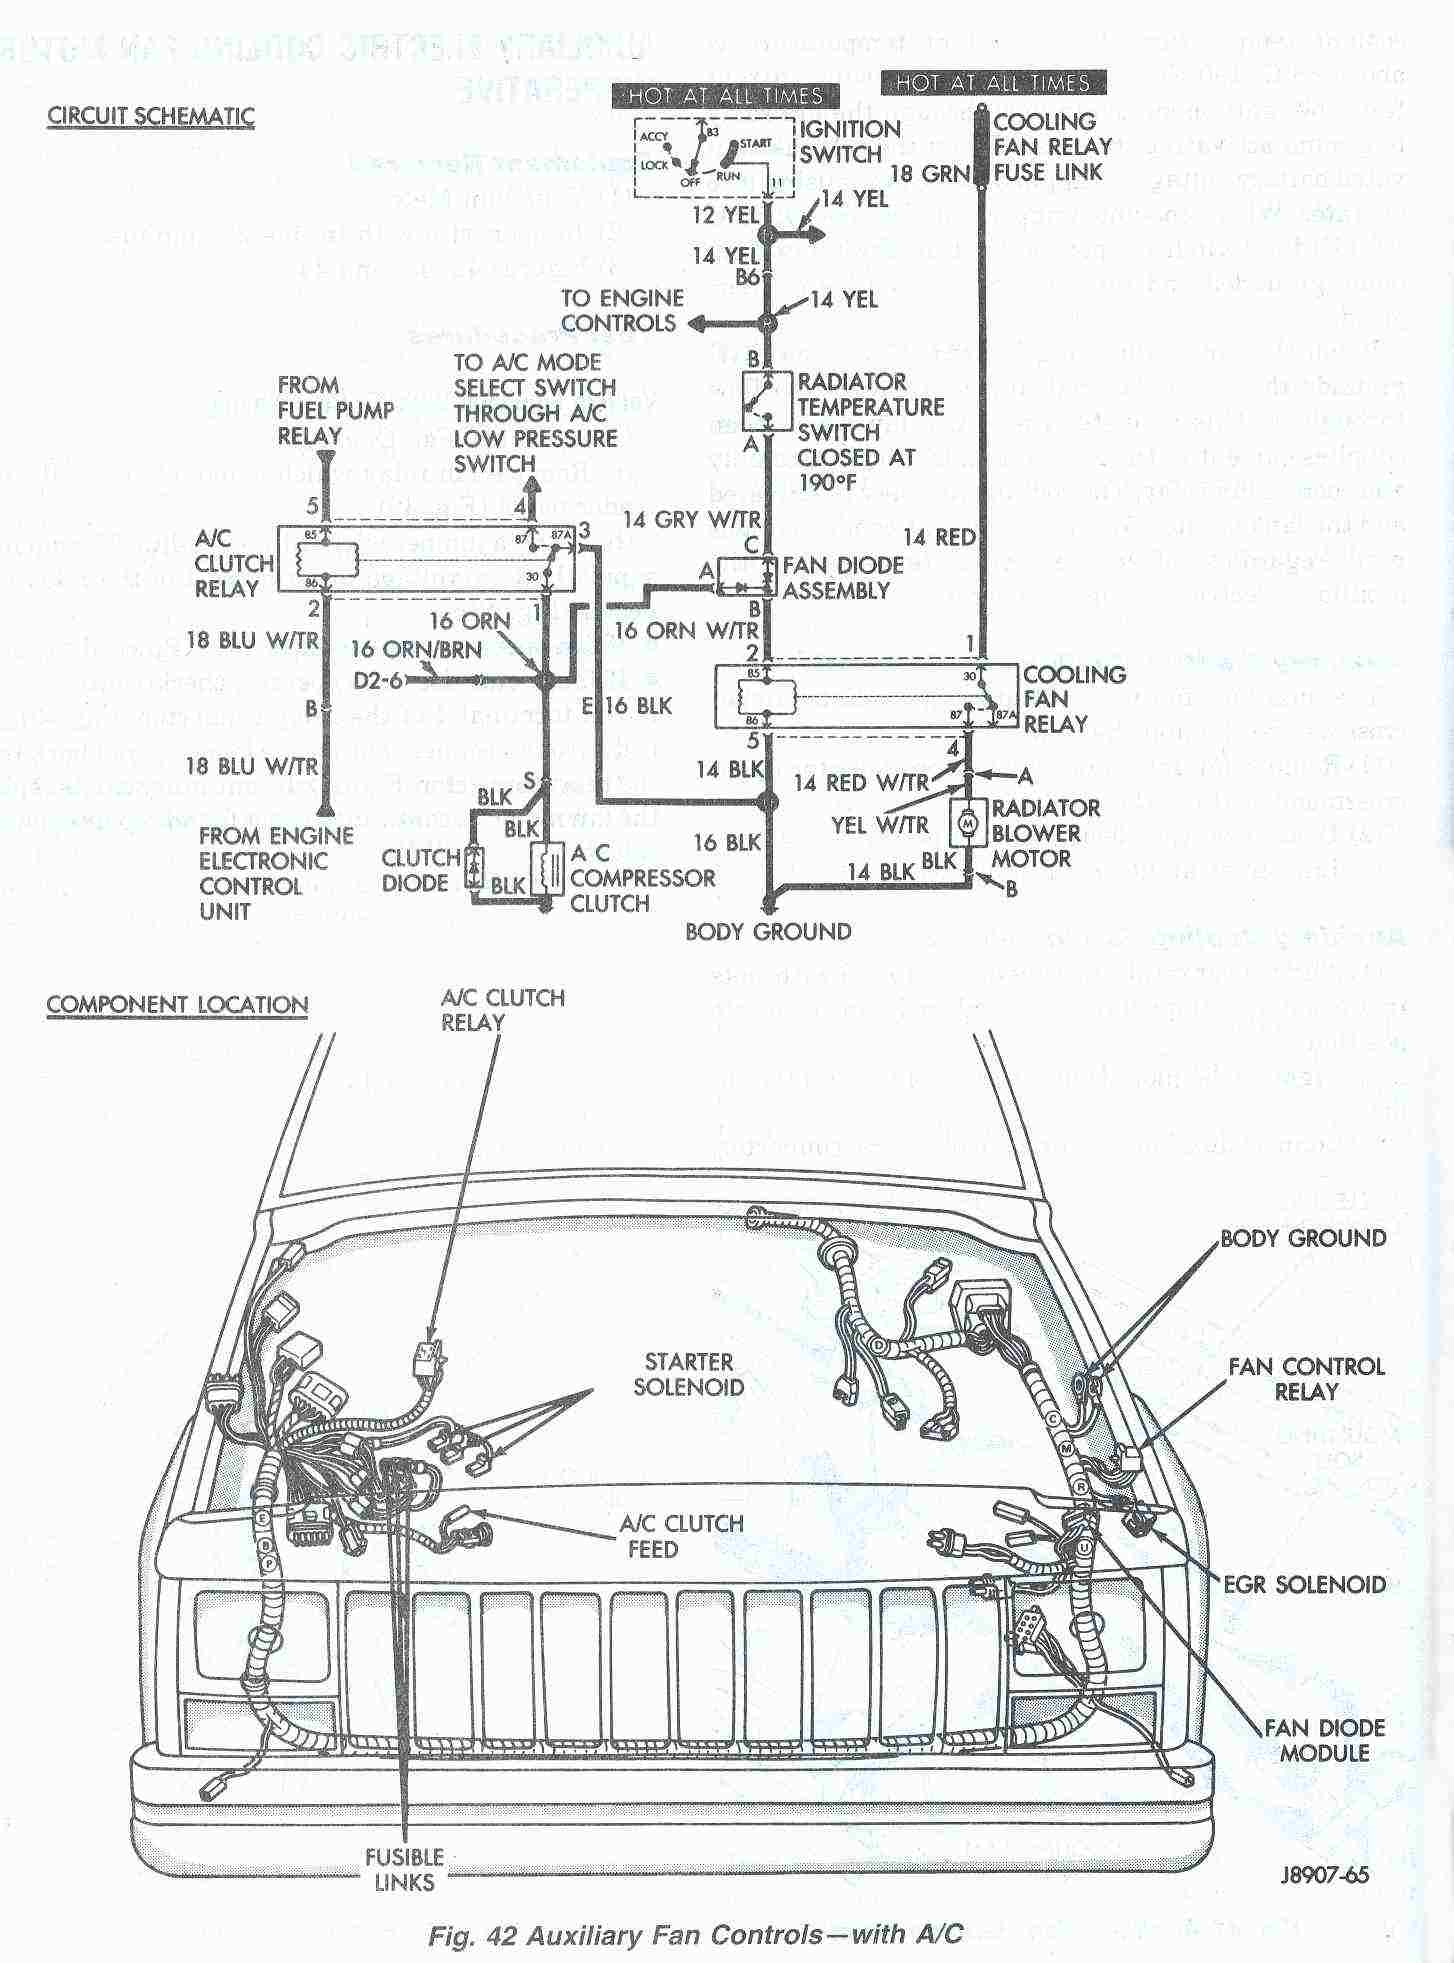 1999 Jeep Cherokee Ecm Wiring Diagram | Wiring Liry Jeep Grand Cherokee Ecm Wiring Diagram For on